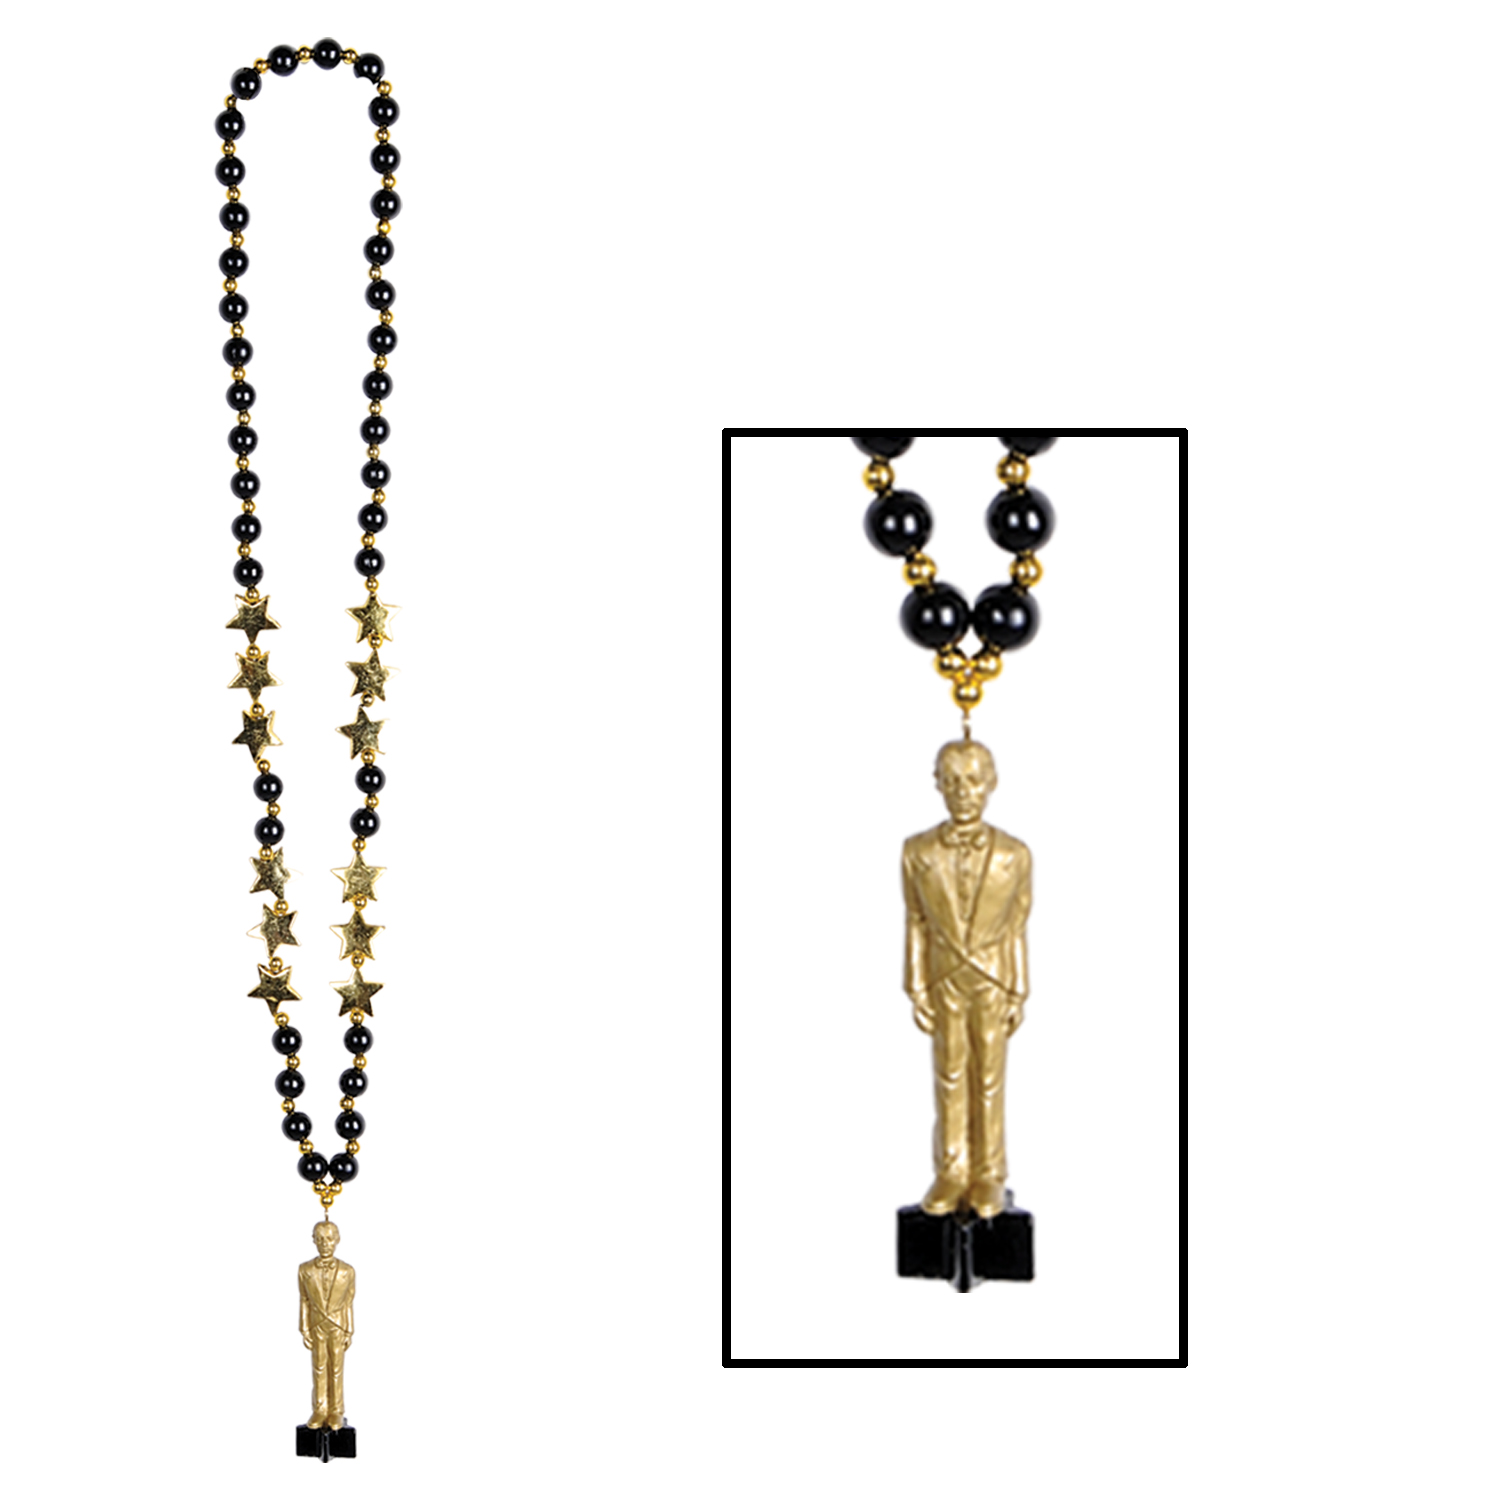 Beads w/Awards Night Statuette (Pack of 12) beads, party, awards night, Hollywood, statuette